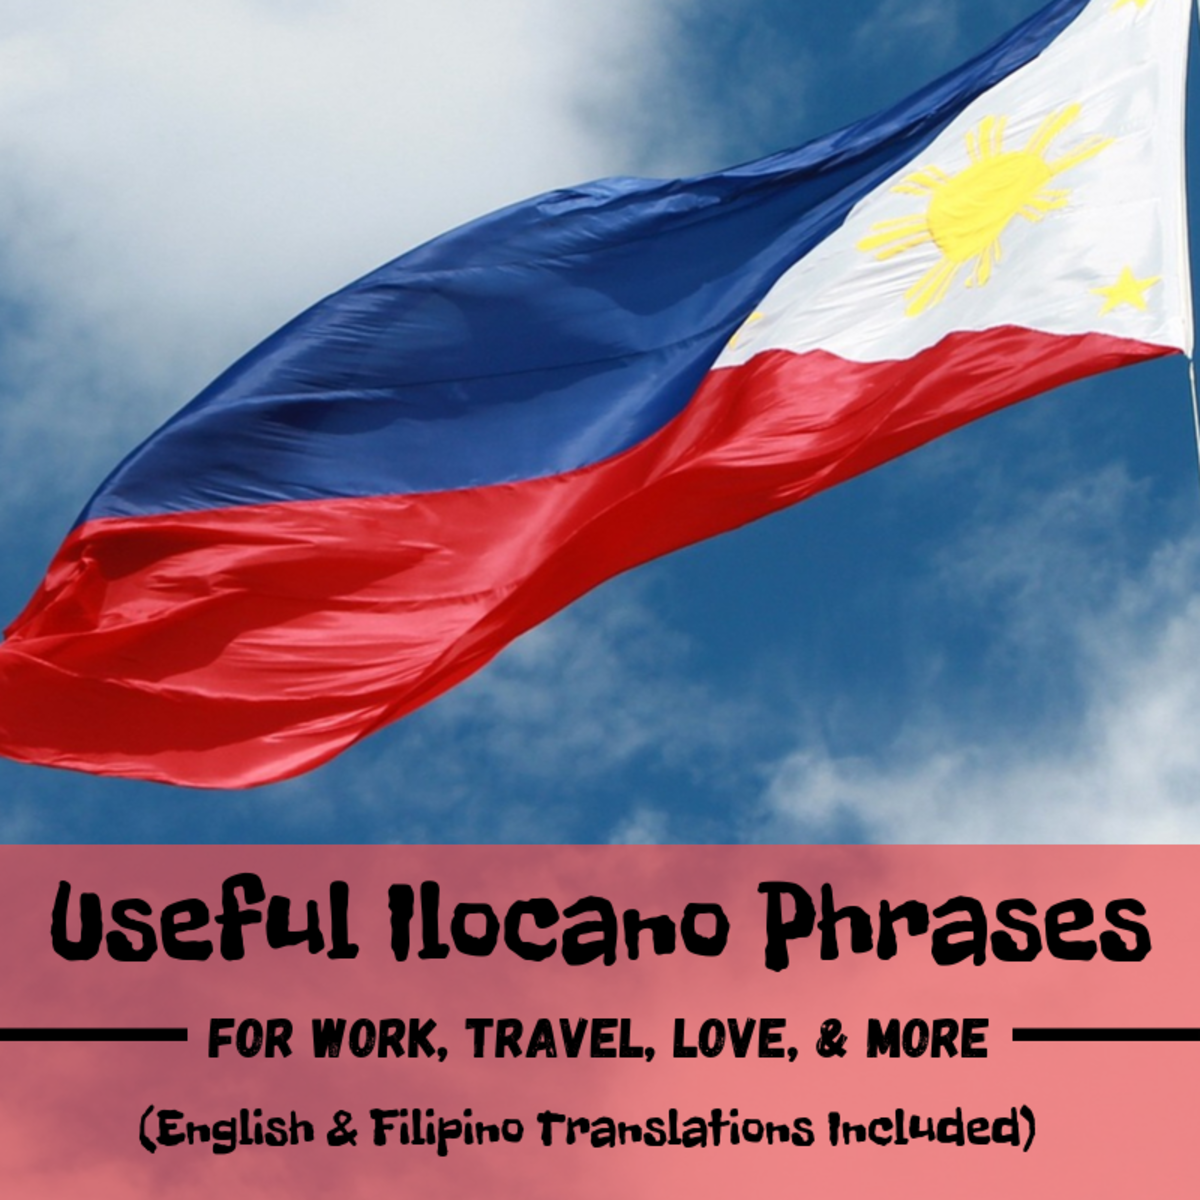 Here are some basic phrases in Ilocano that you can use while traveling, working, dining, or simply trying to pick up the dialect.